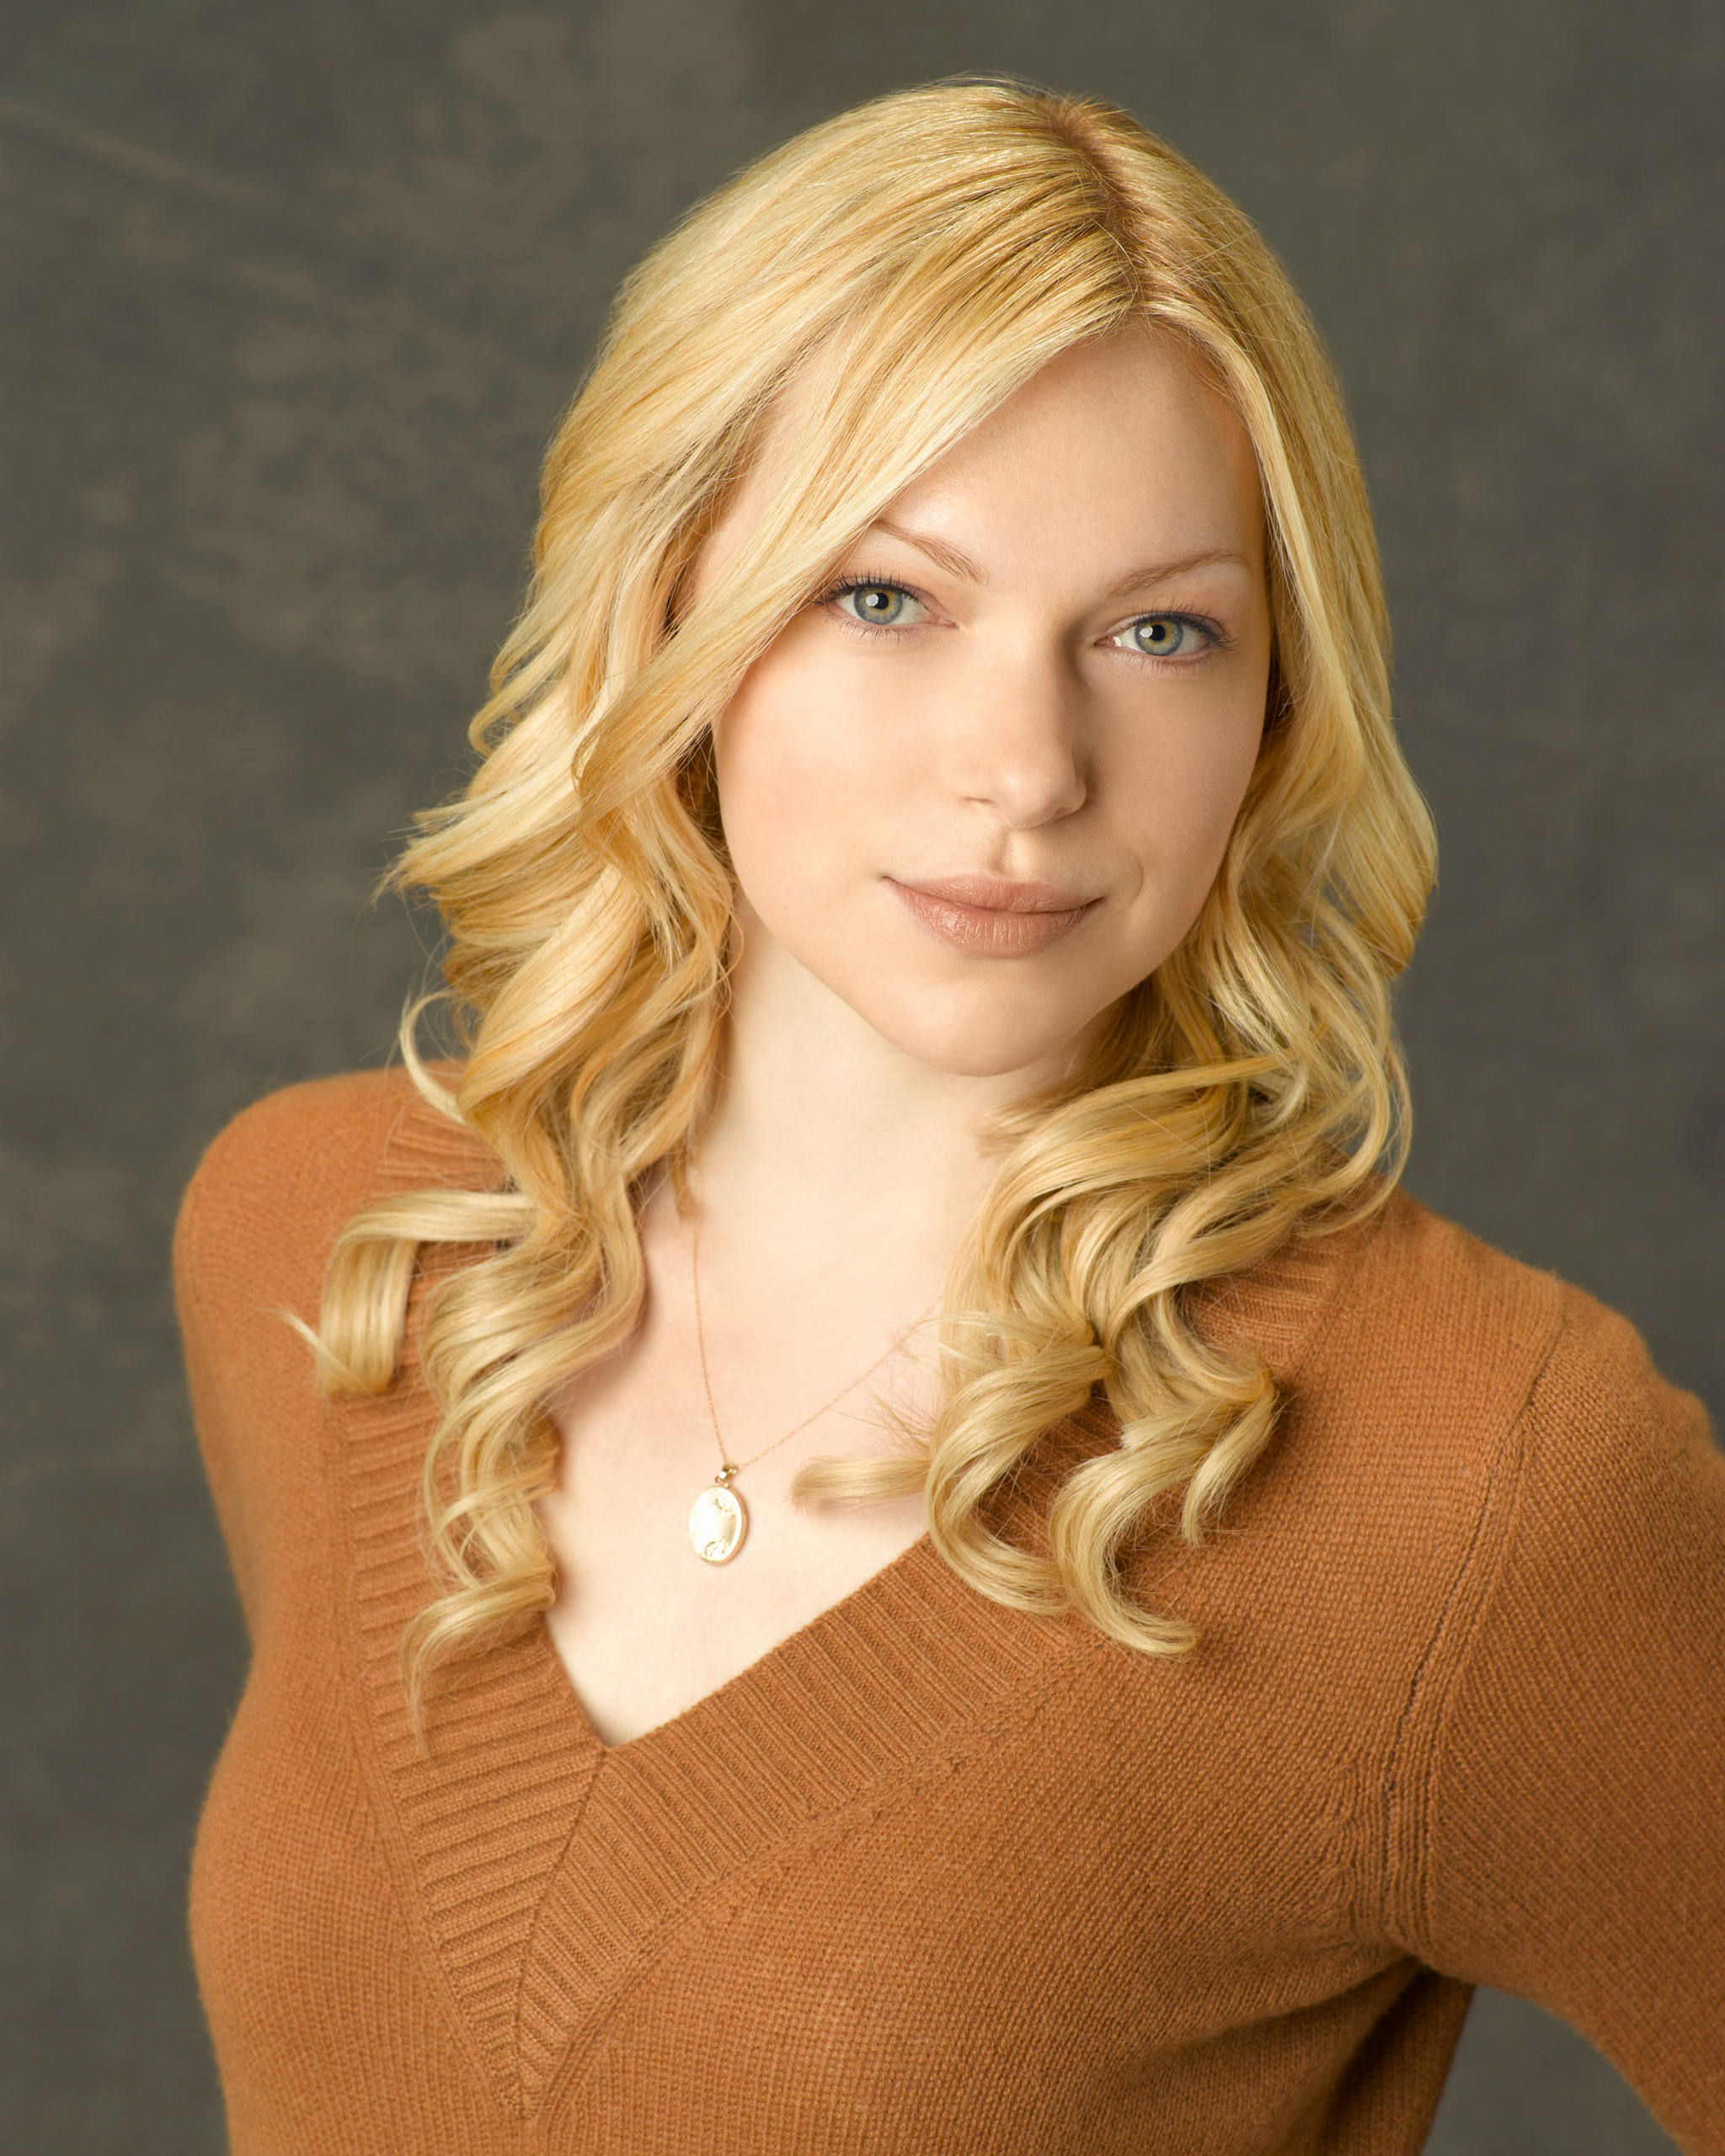 Laura in october road hq laura prepon photo 25464528 fanpop - Laura nue ...